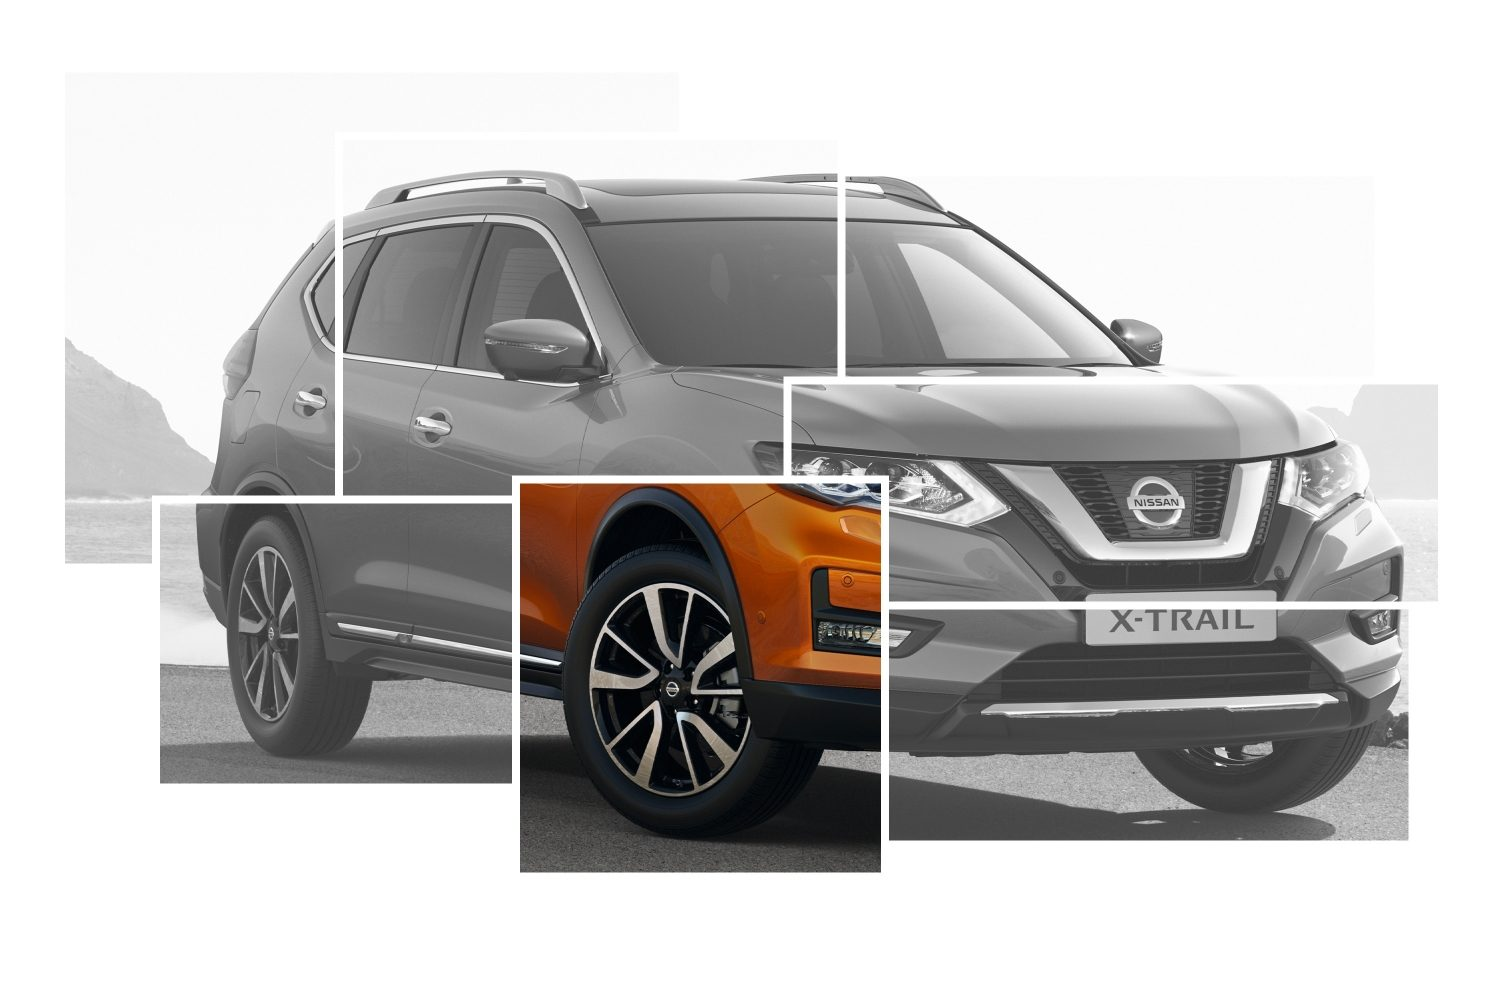 Nissan 7 Seater Cars X Trail Design Features A 4x4 Suv 5 Or 7 Seater Car